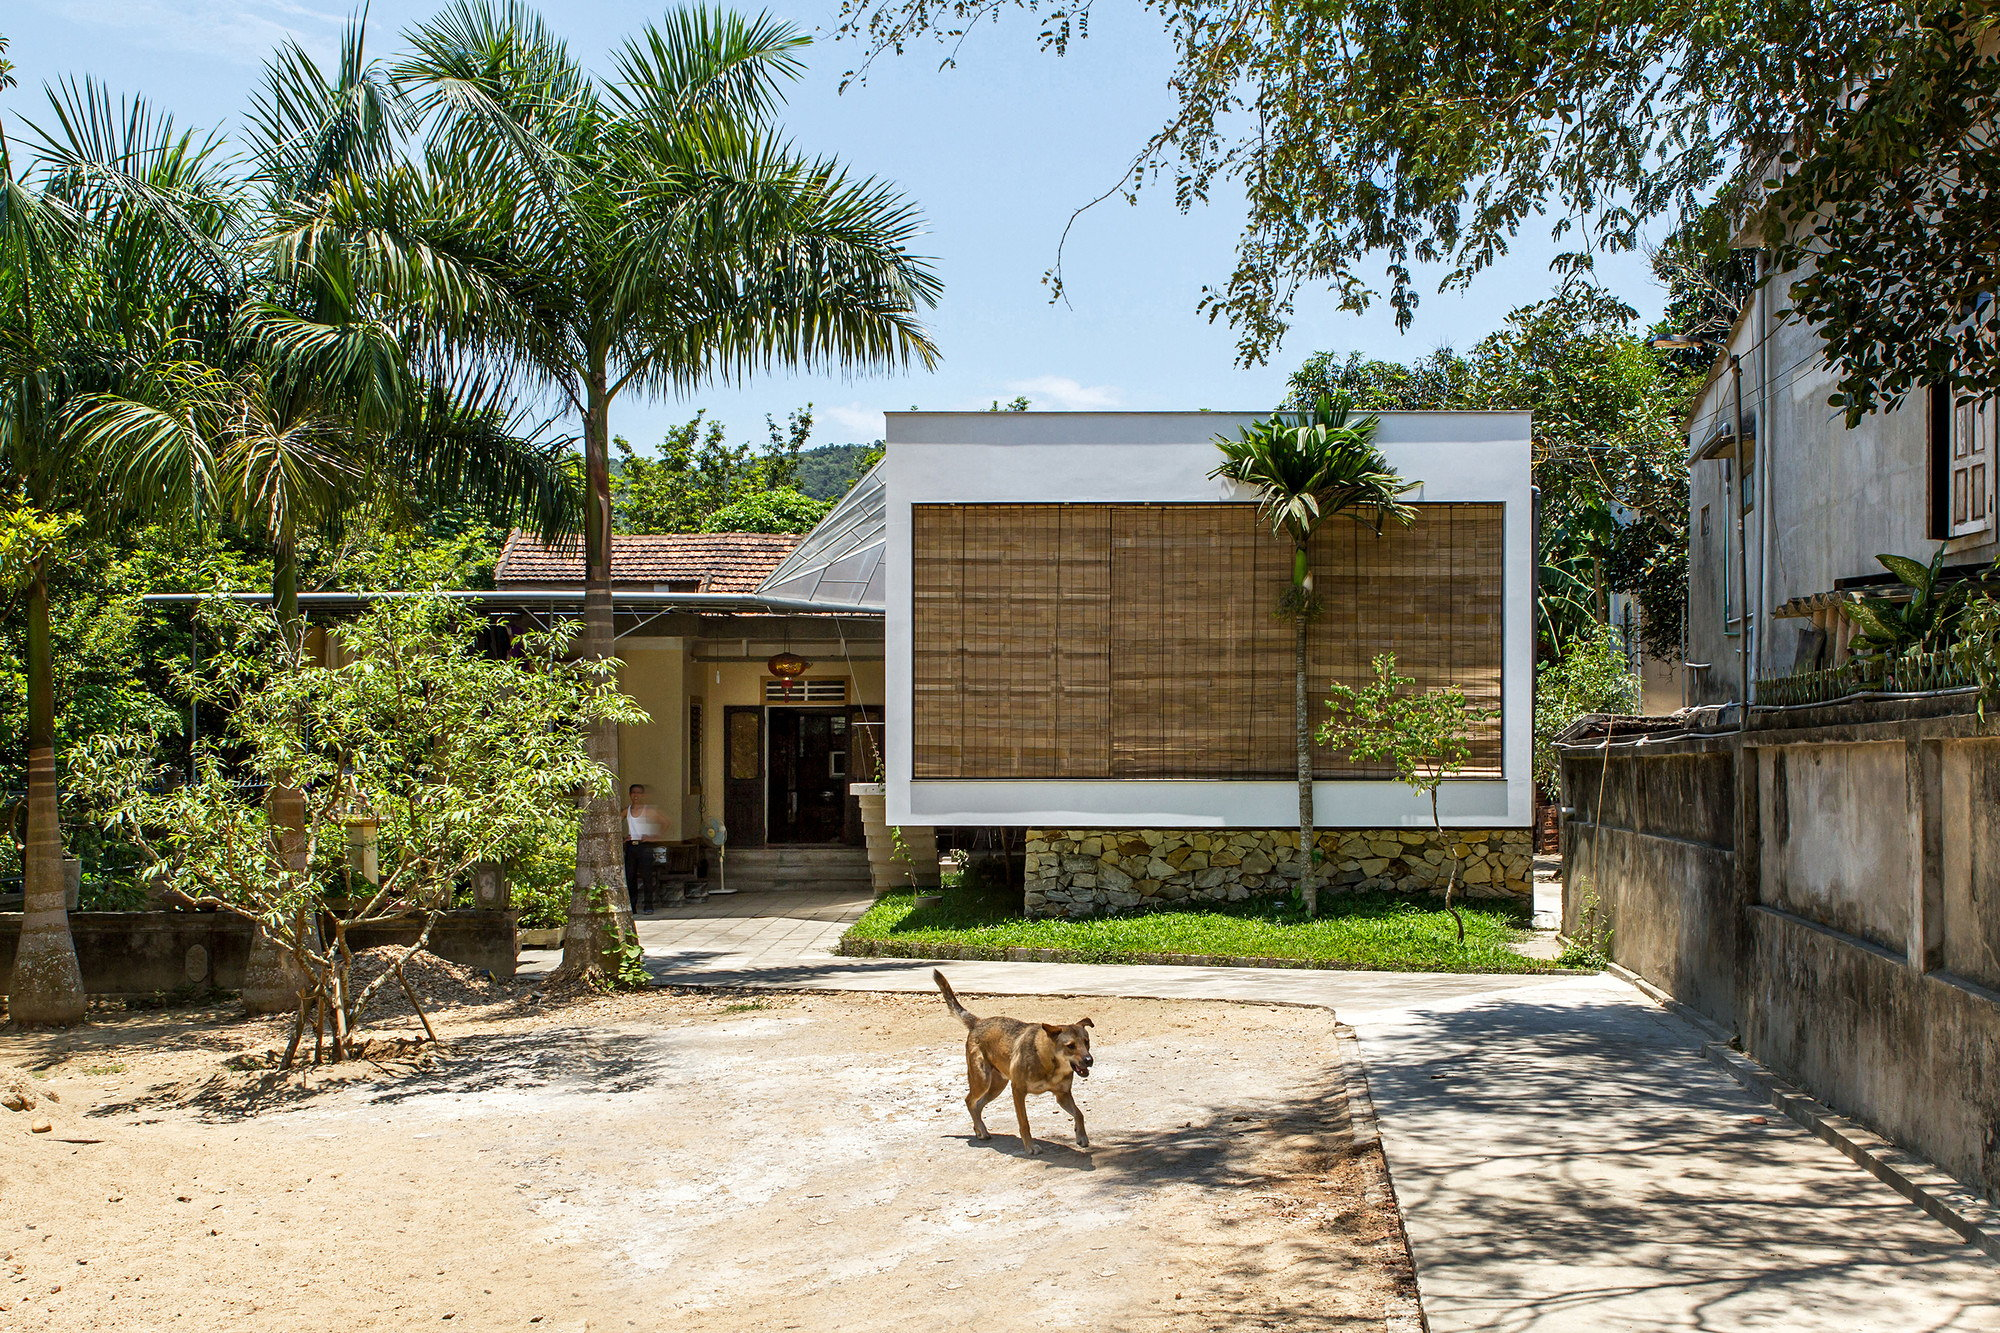 The Shelter Quot Extension Of The Rural House S Space In Vietnam